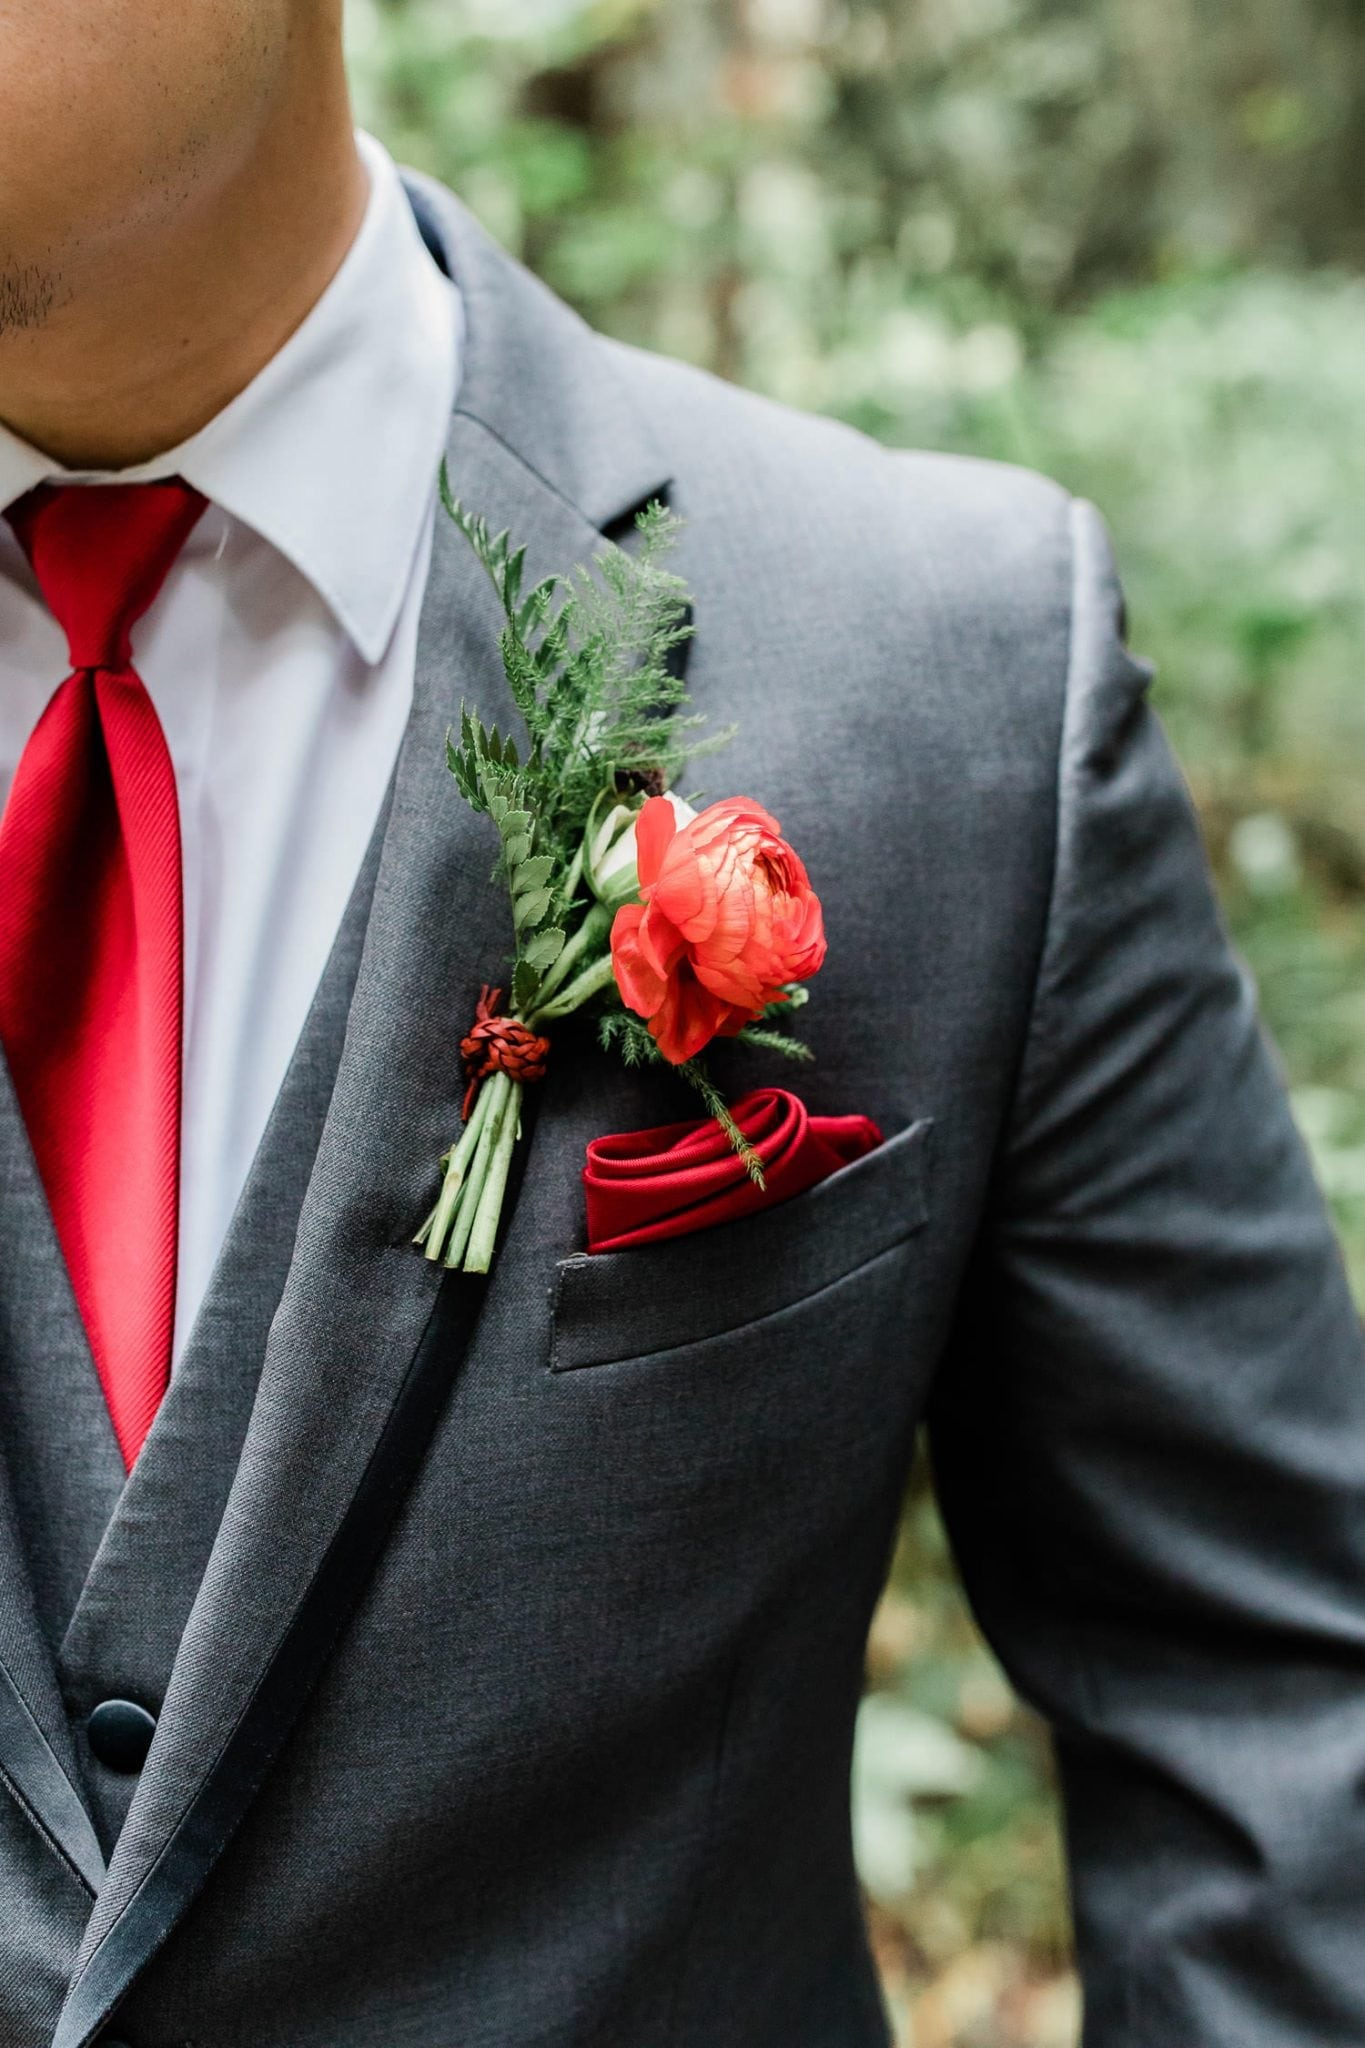 Groomsman with rustic boutonniere | Vancouver wedding photographer